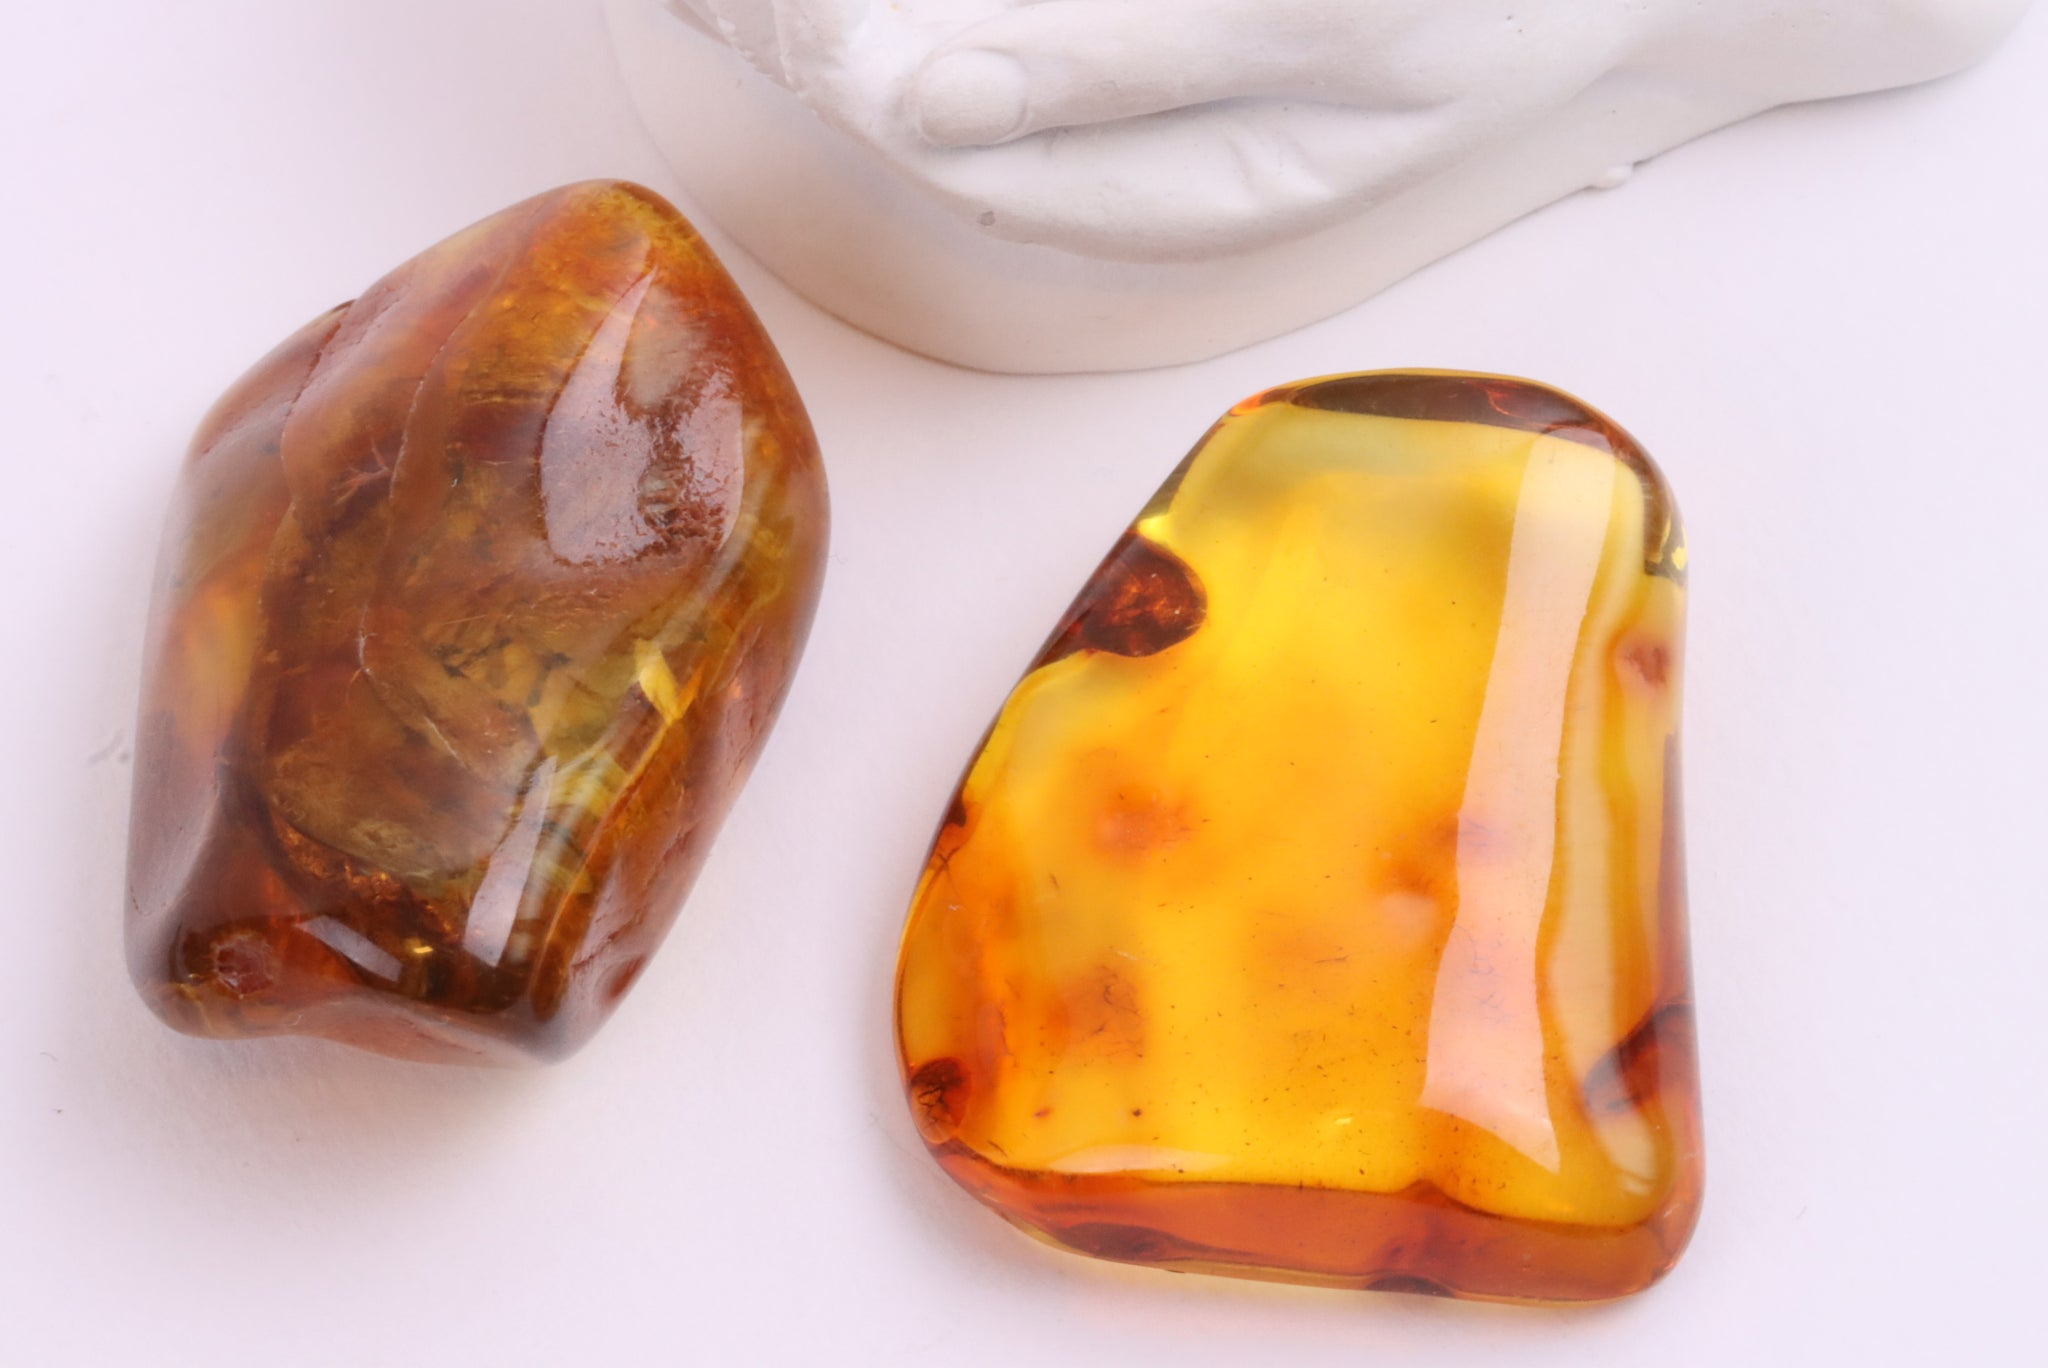 Pair of Amber Gemstones - Long Distance Gift